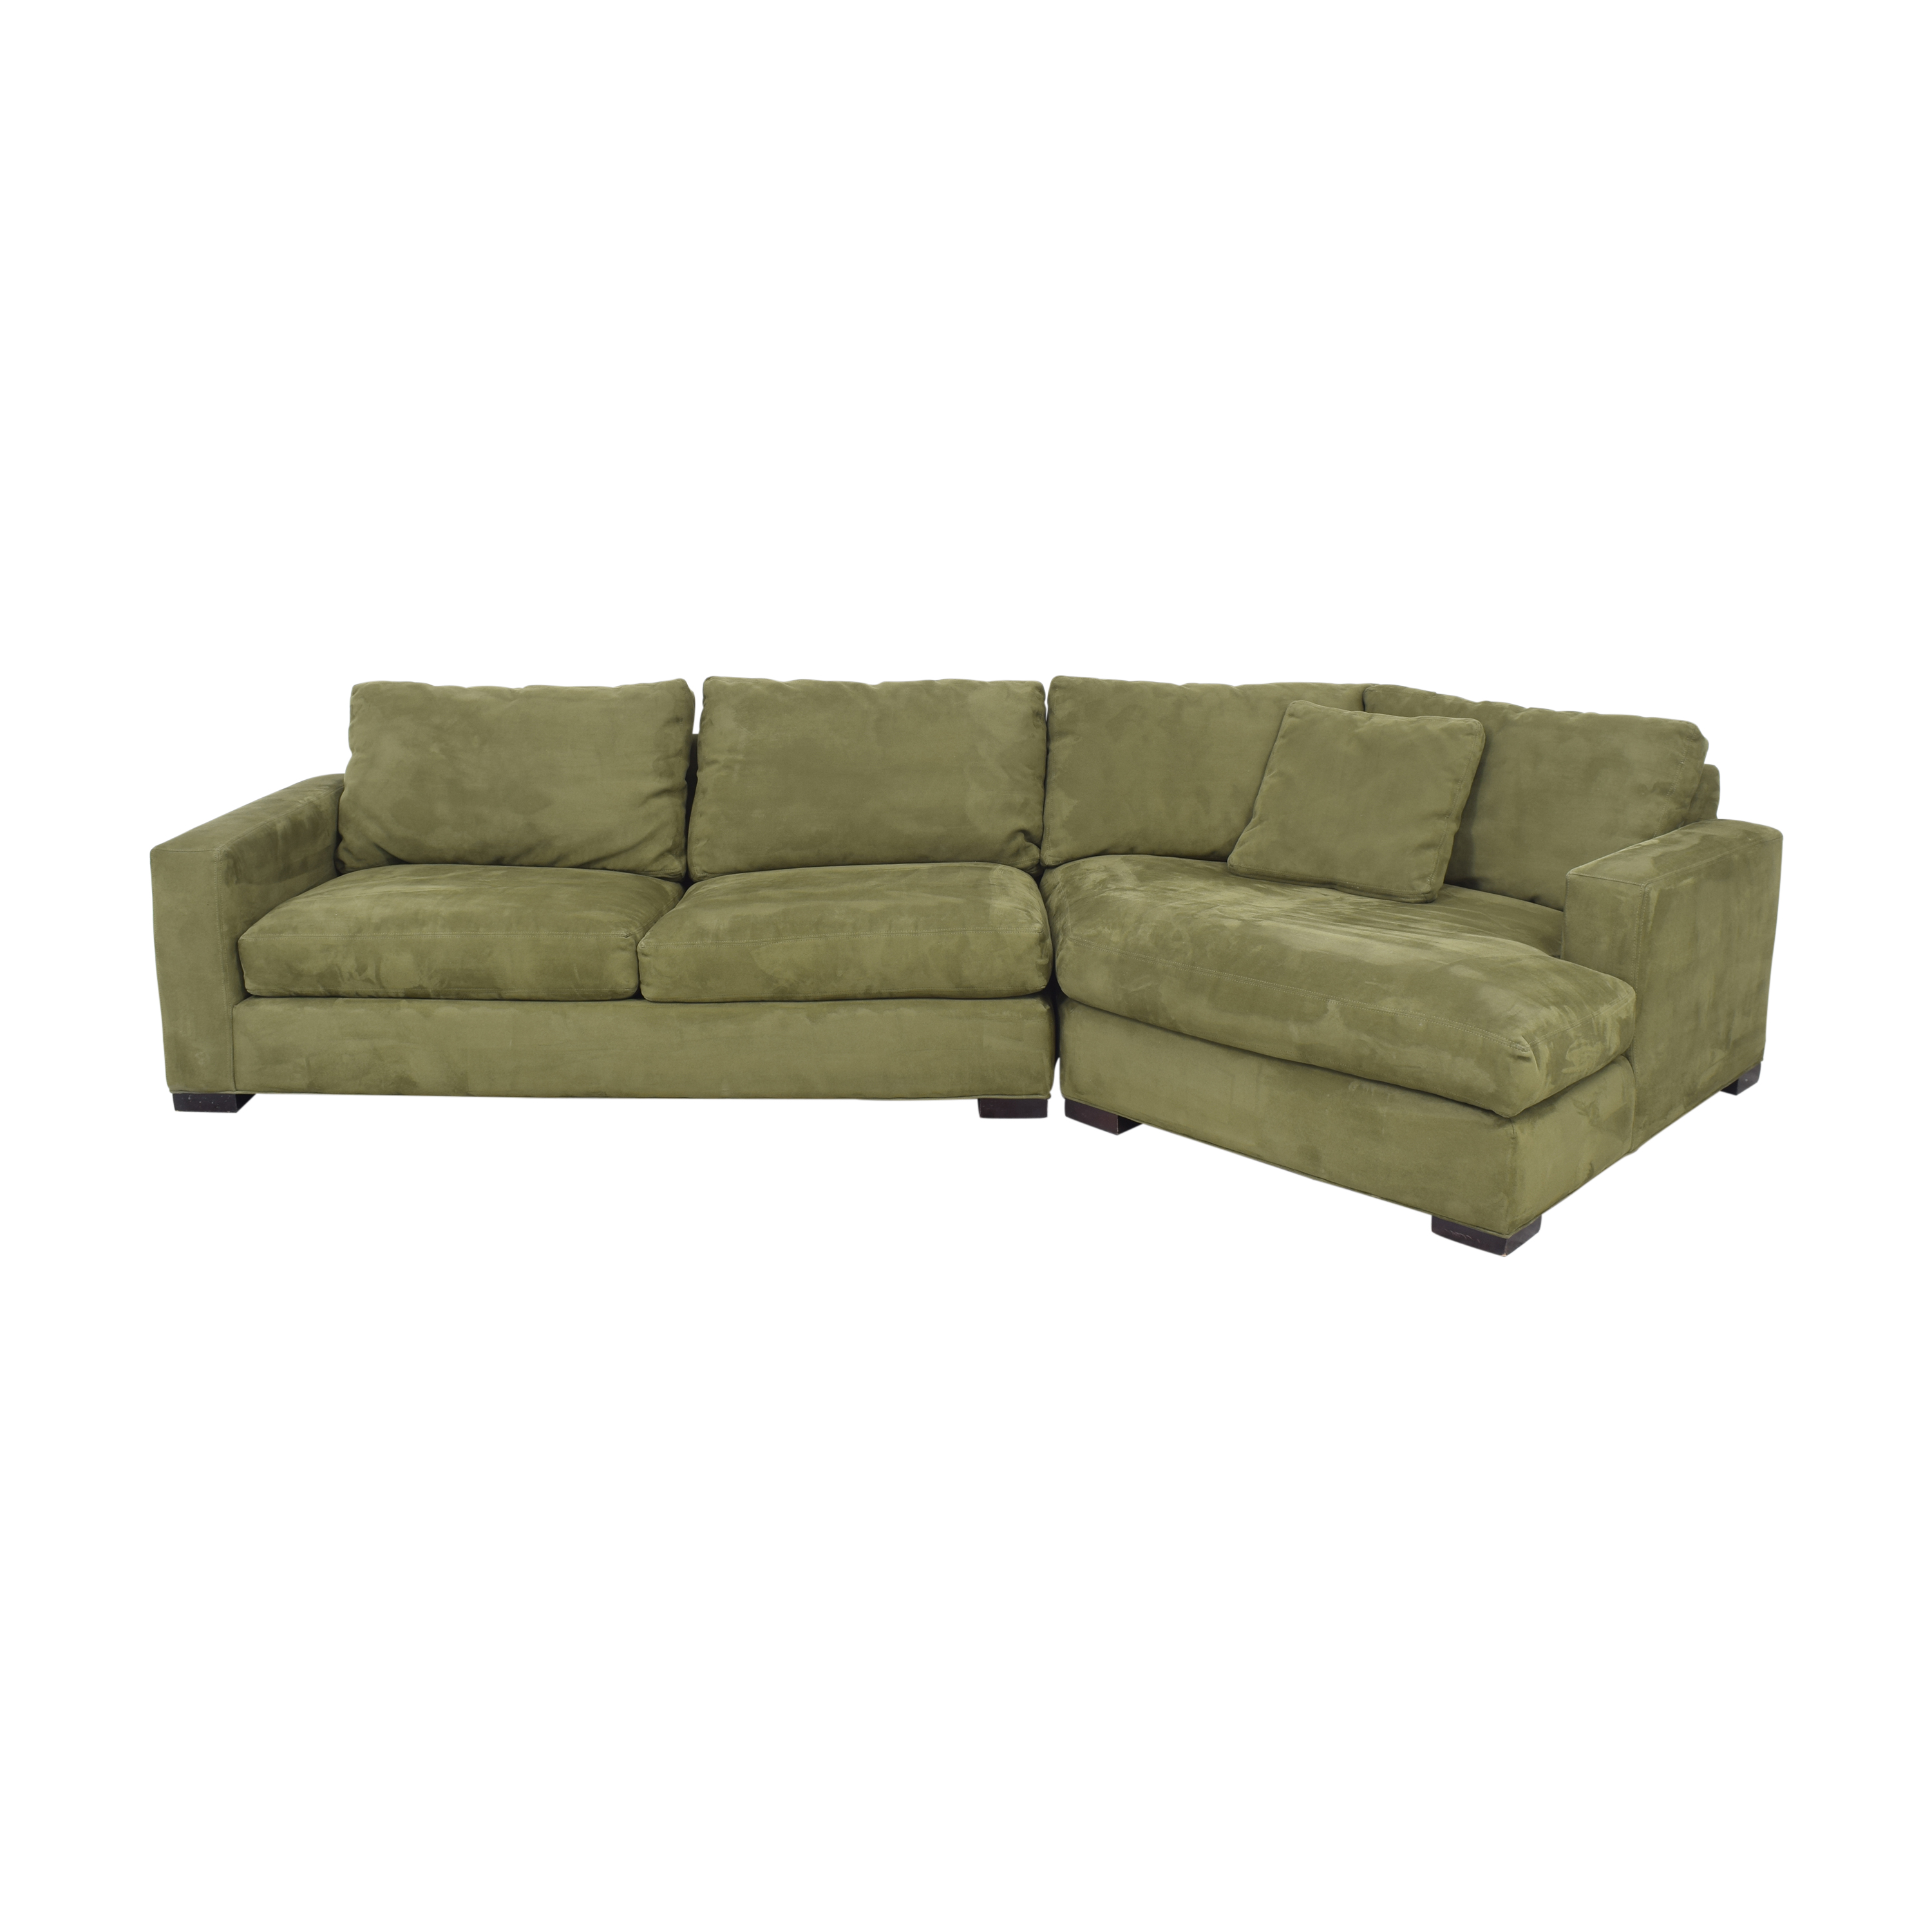 Room & Board Room & Board Wedge Sectional Sofa used